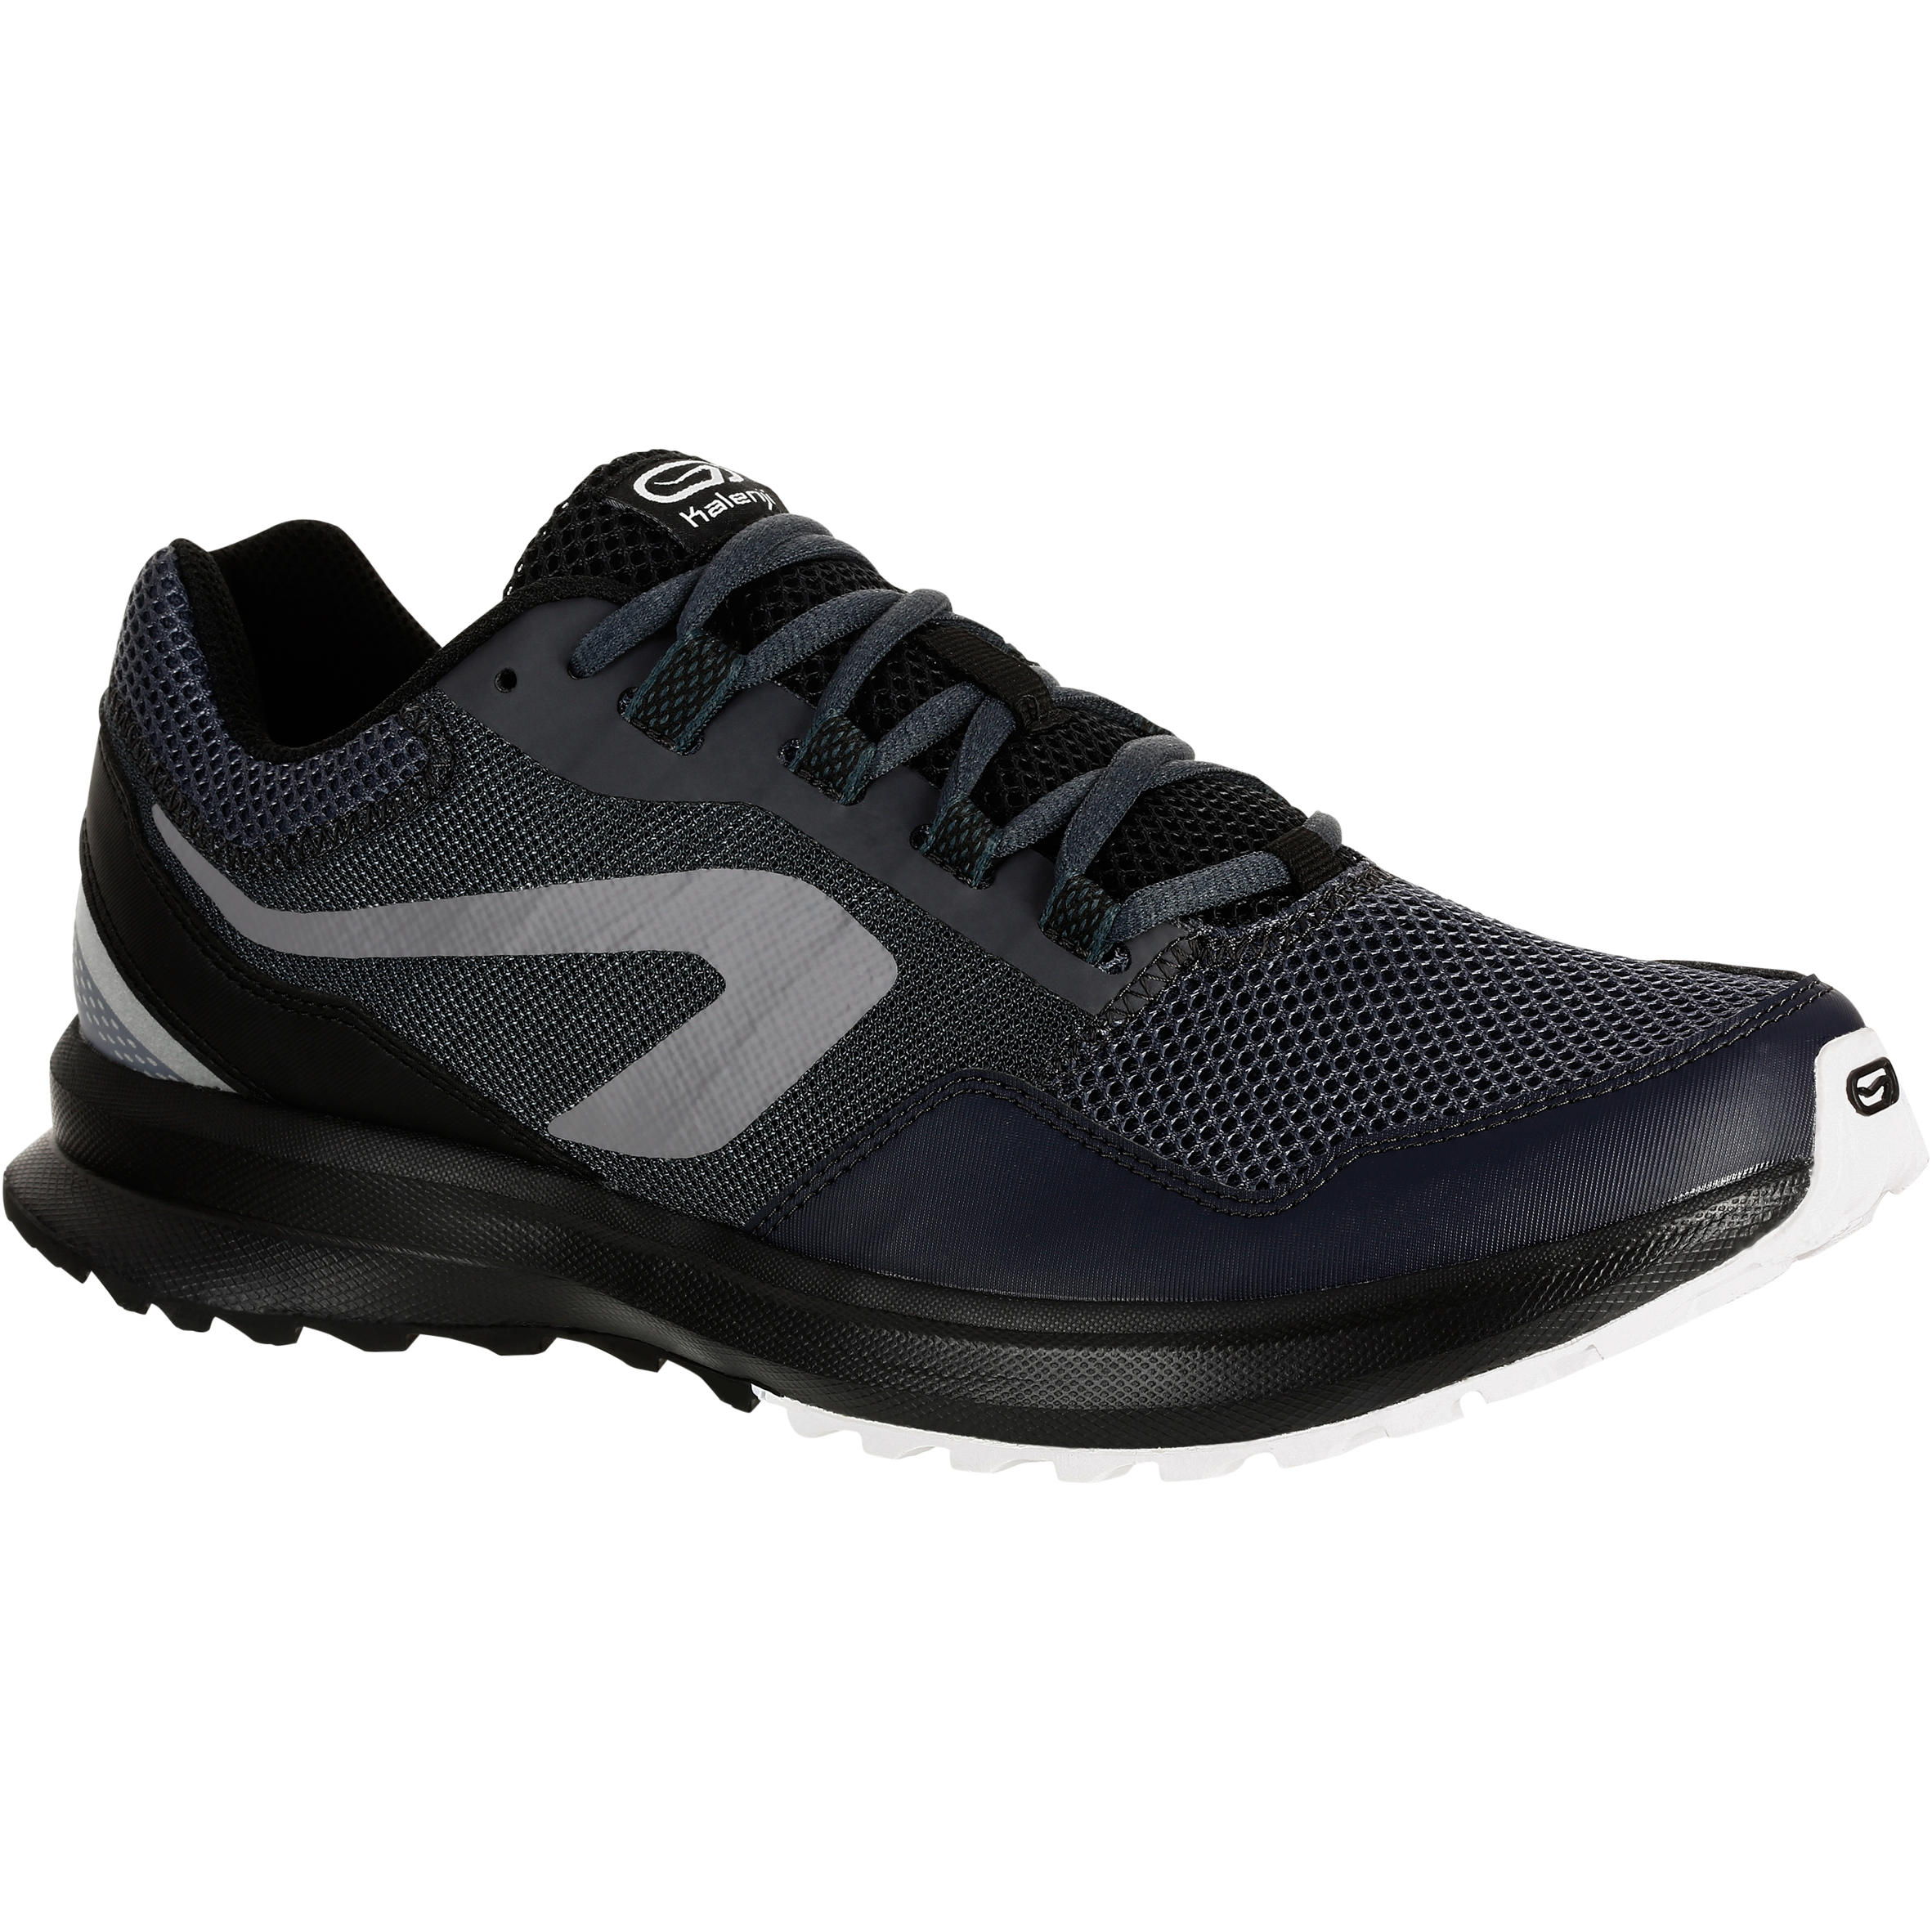 RUN ACTIVE GRIP MEN'S RUNNING SHOES GREY BLACK